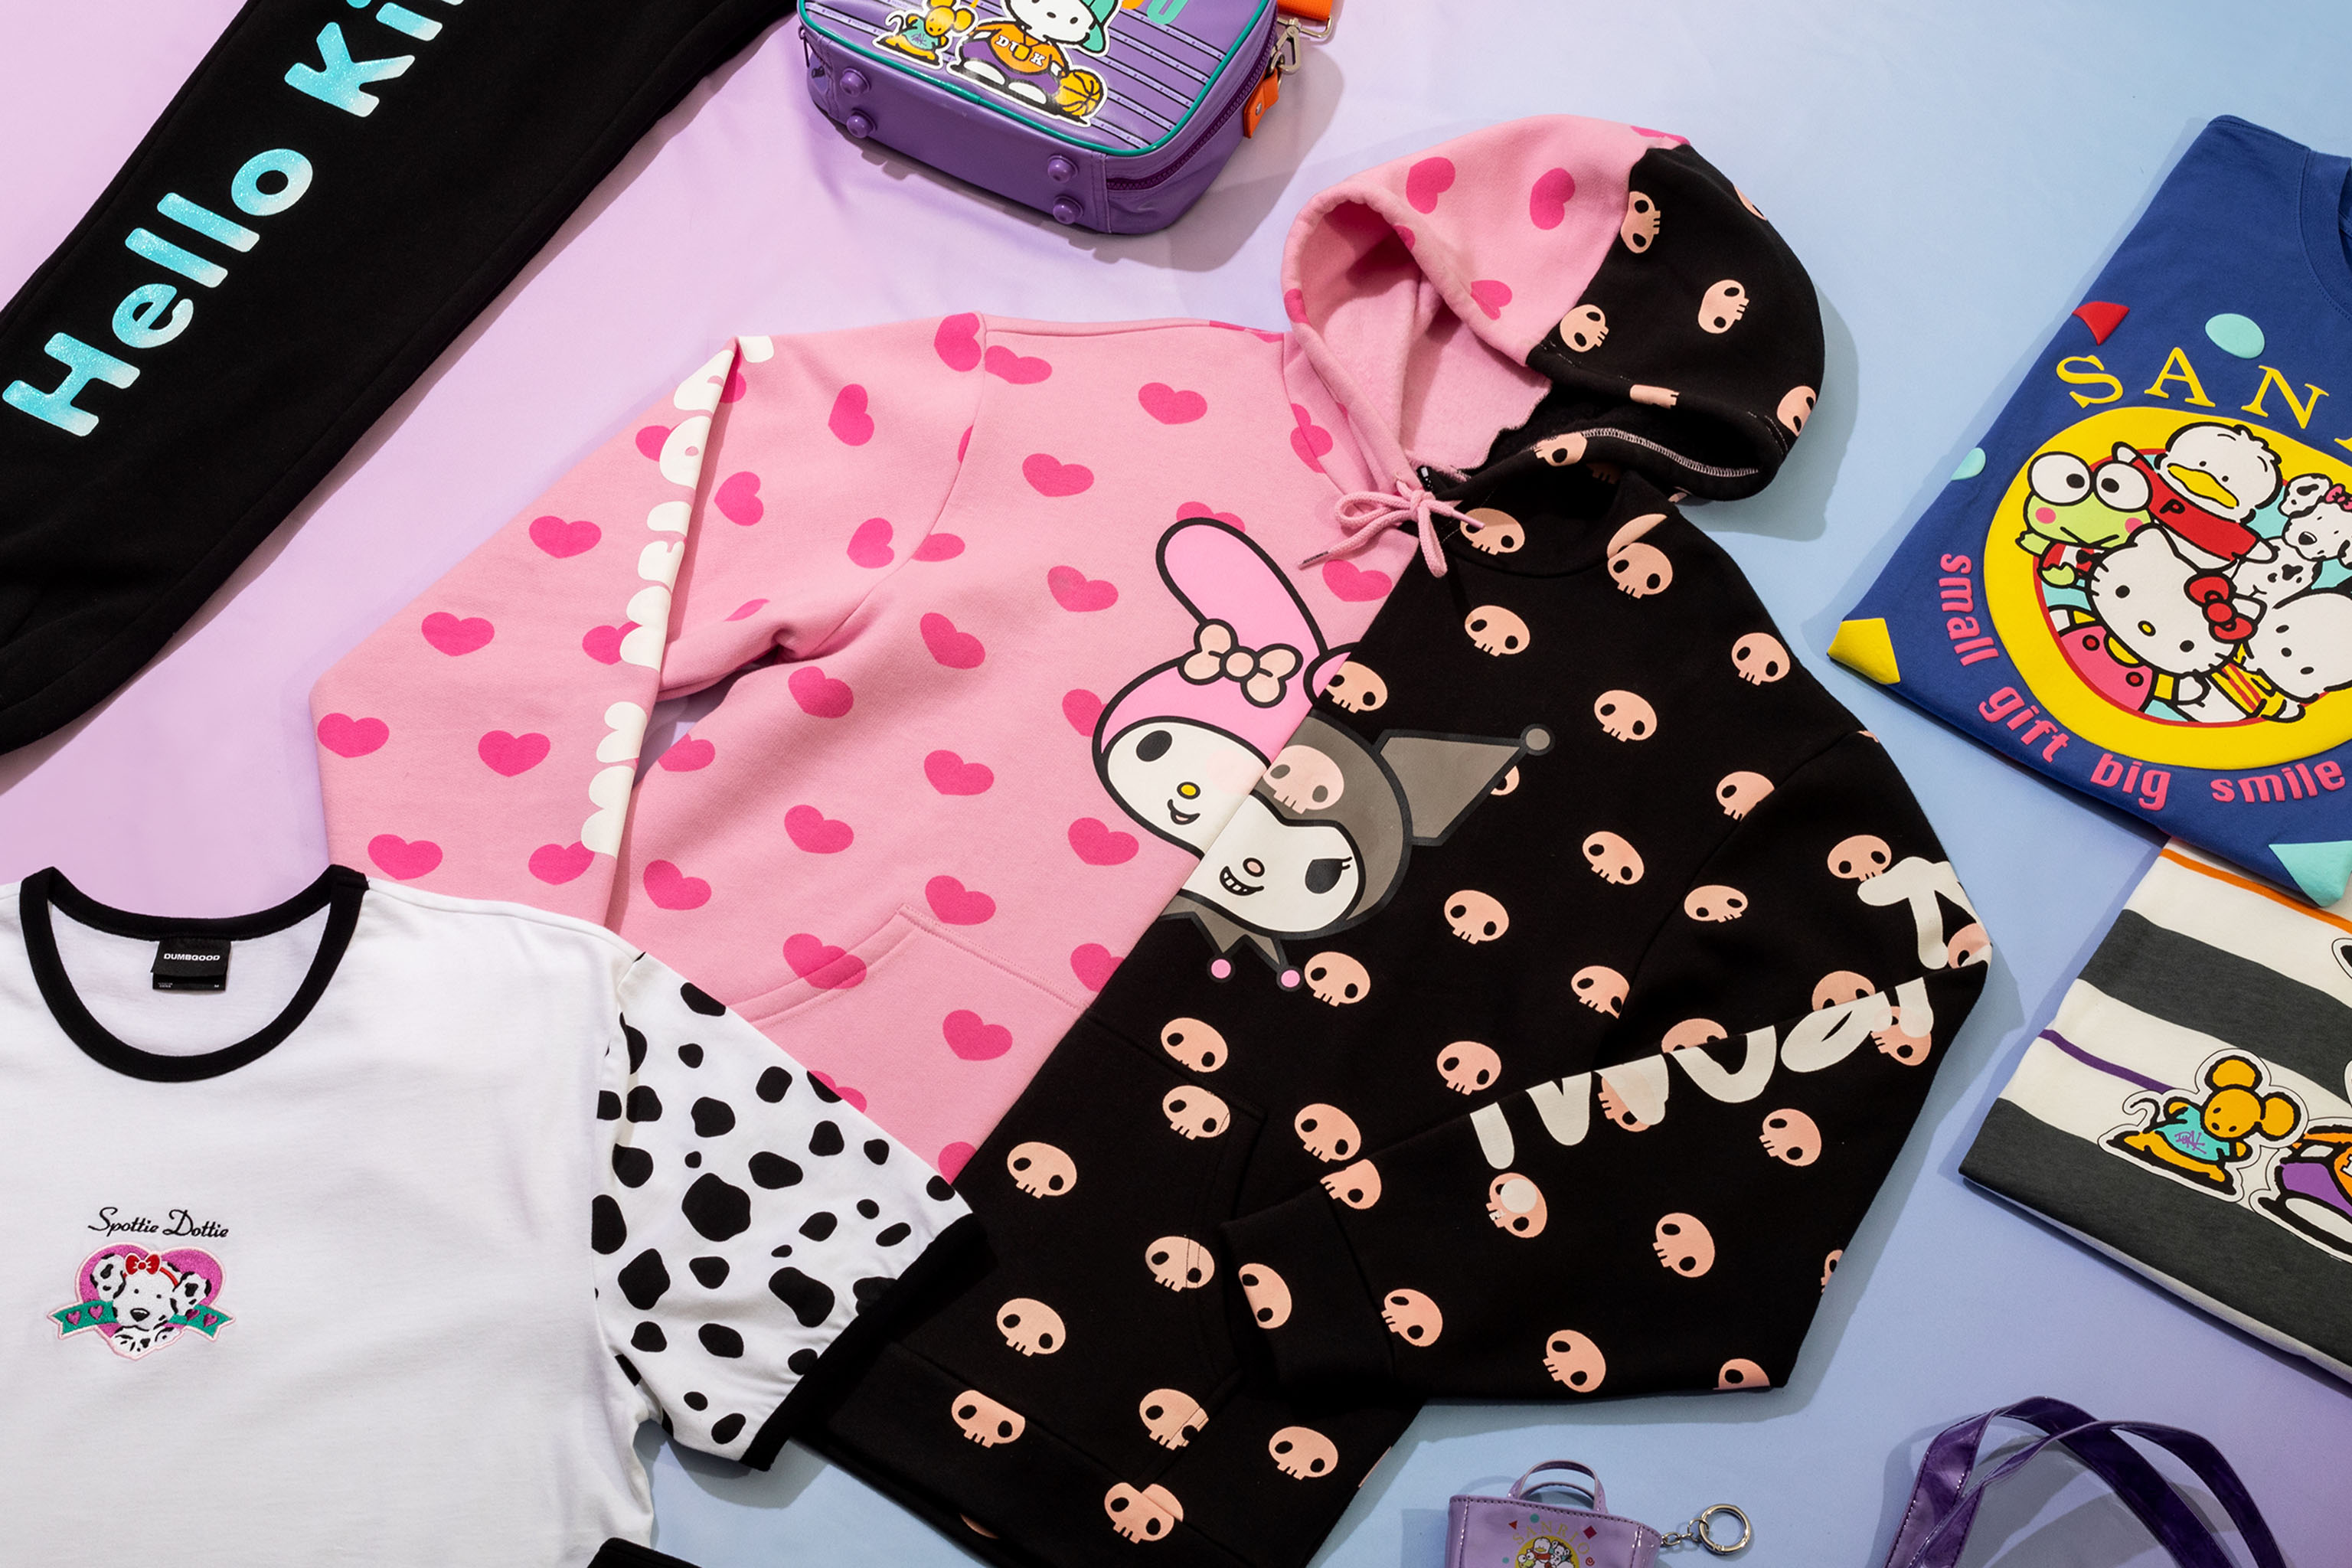 Pieces from Sanrio and Dumbgood's Hello Kitty Capsule.